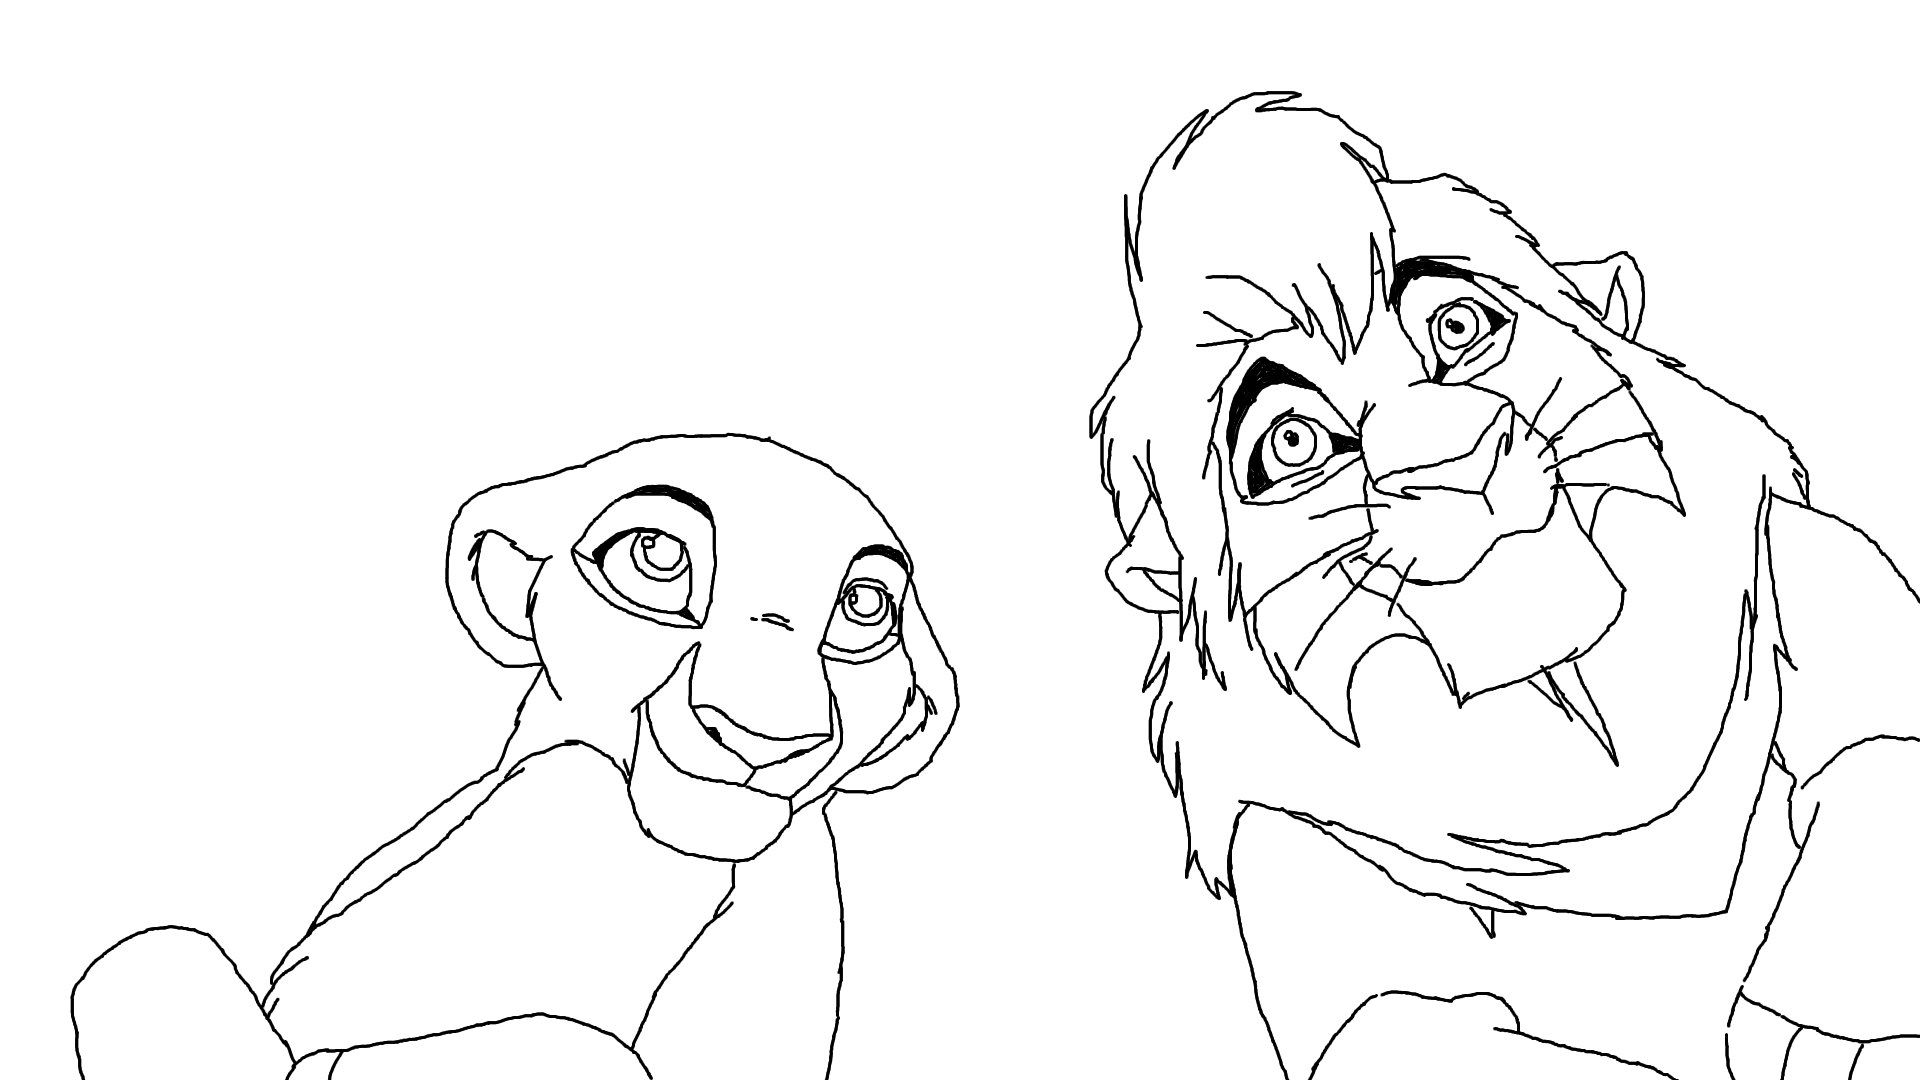 Kovu and kiara base by scarzdaughter on deviantart for Lion king scar coloring pages